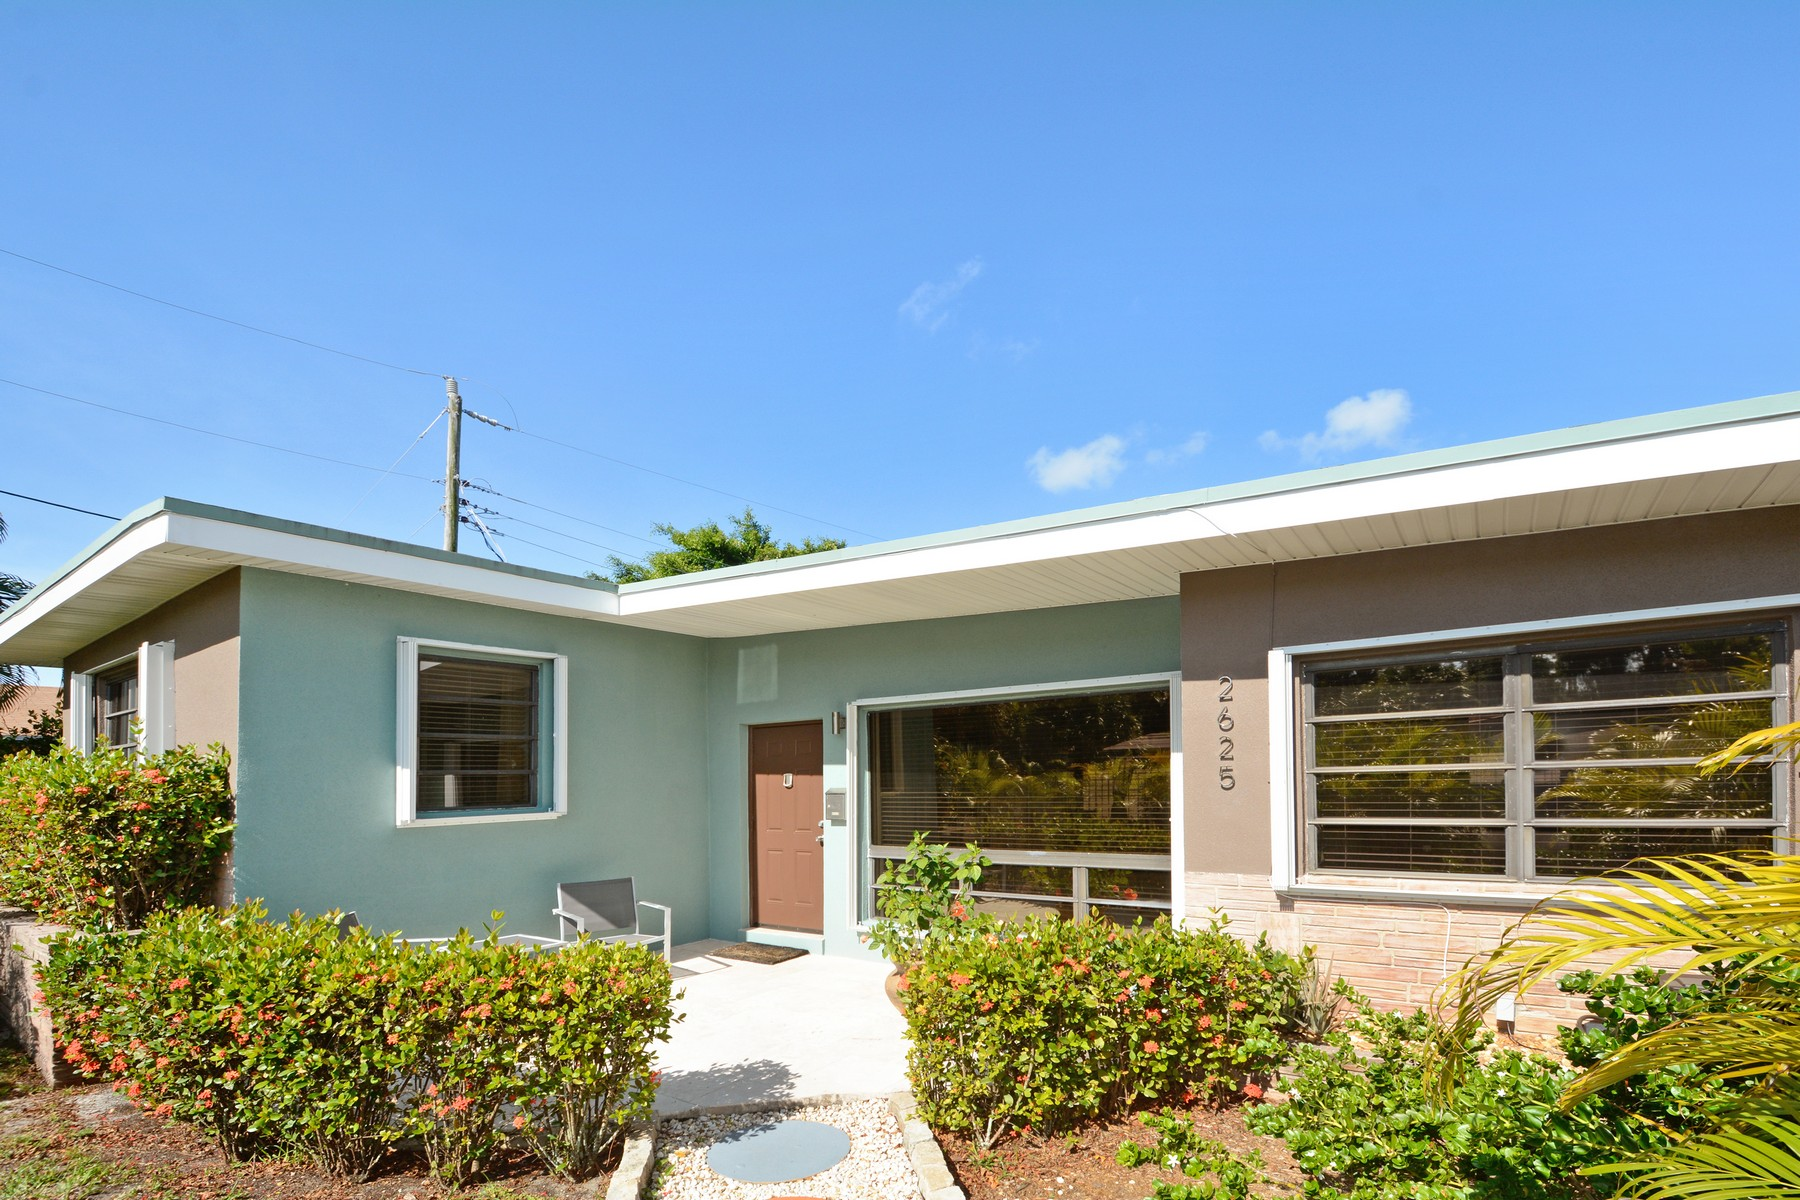 Single Family Home for Sale at Middle River Estates 2625 NE 16th Ave. Fort Lauderdale, Florida 33334 United States